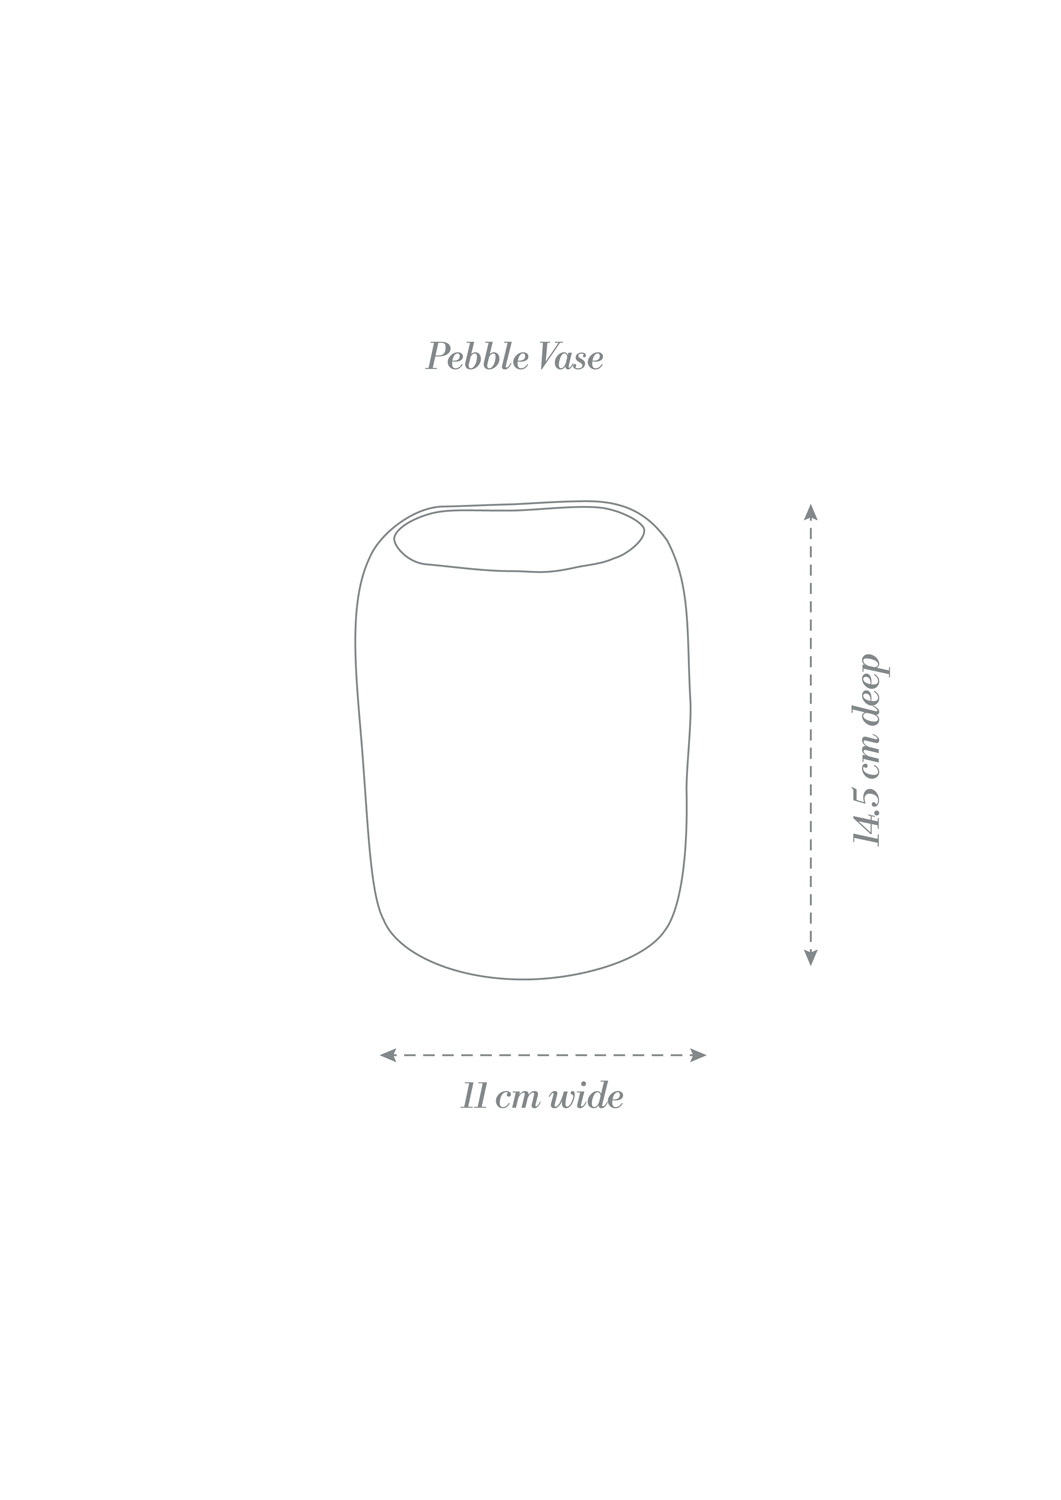 Pebble Vase Product Diagram